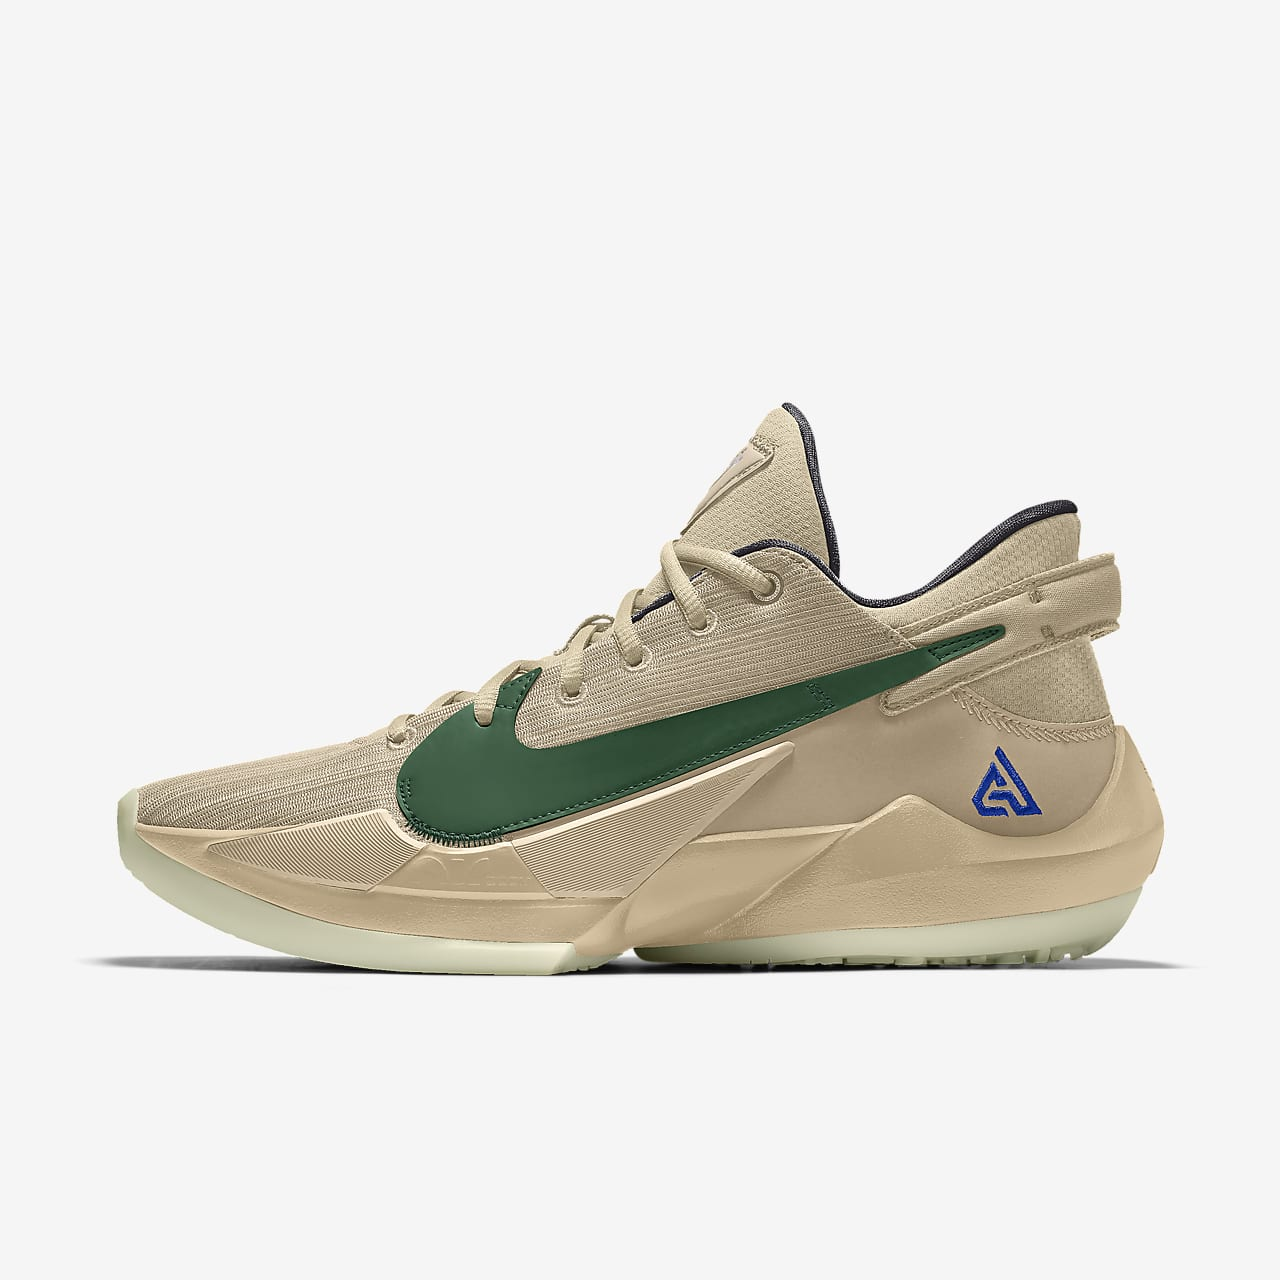 Chaussure de basketball personnalisable Zoom Freak 2 Nike By You